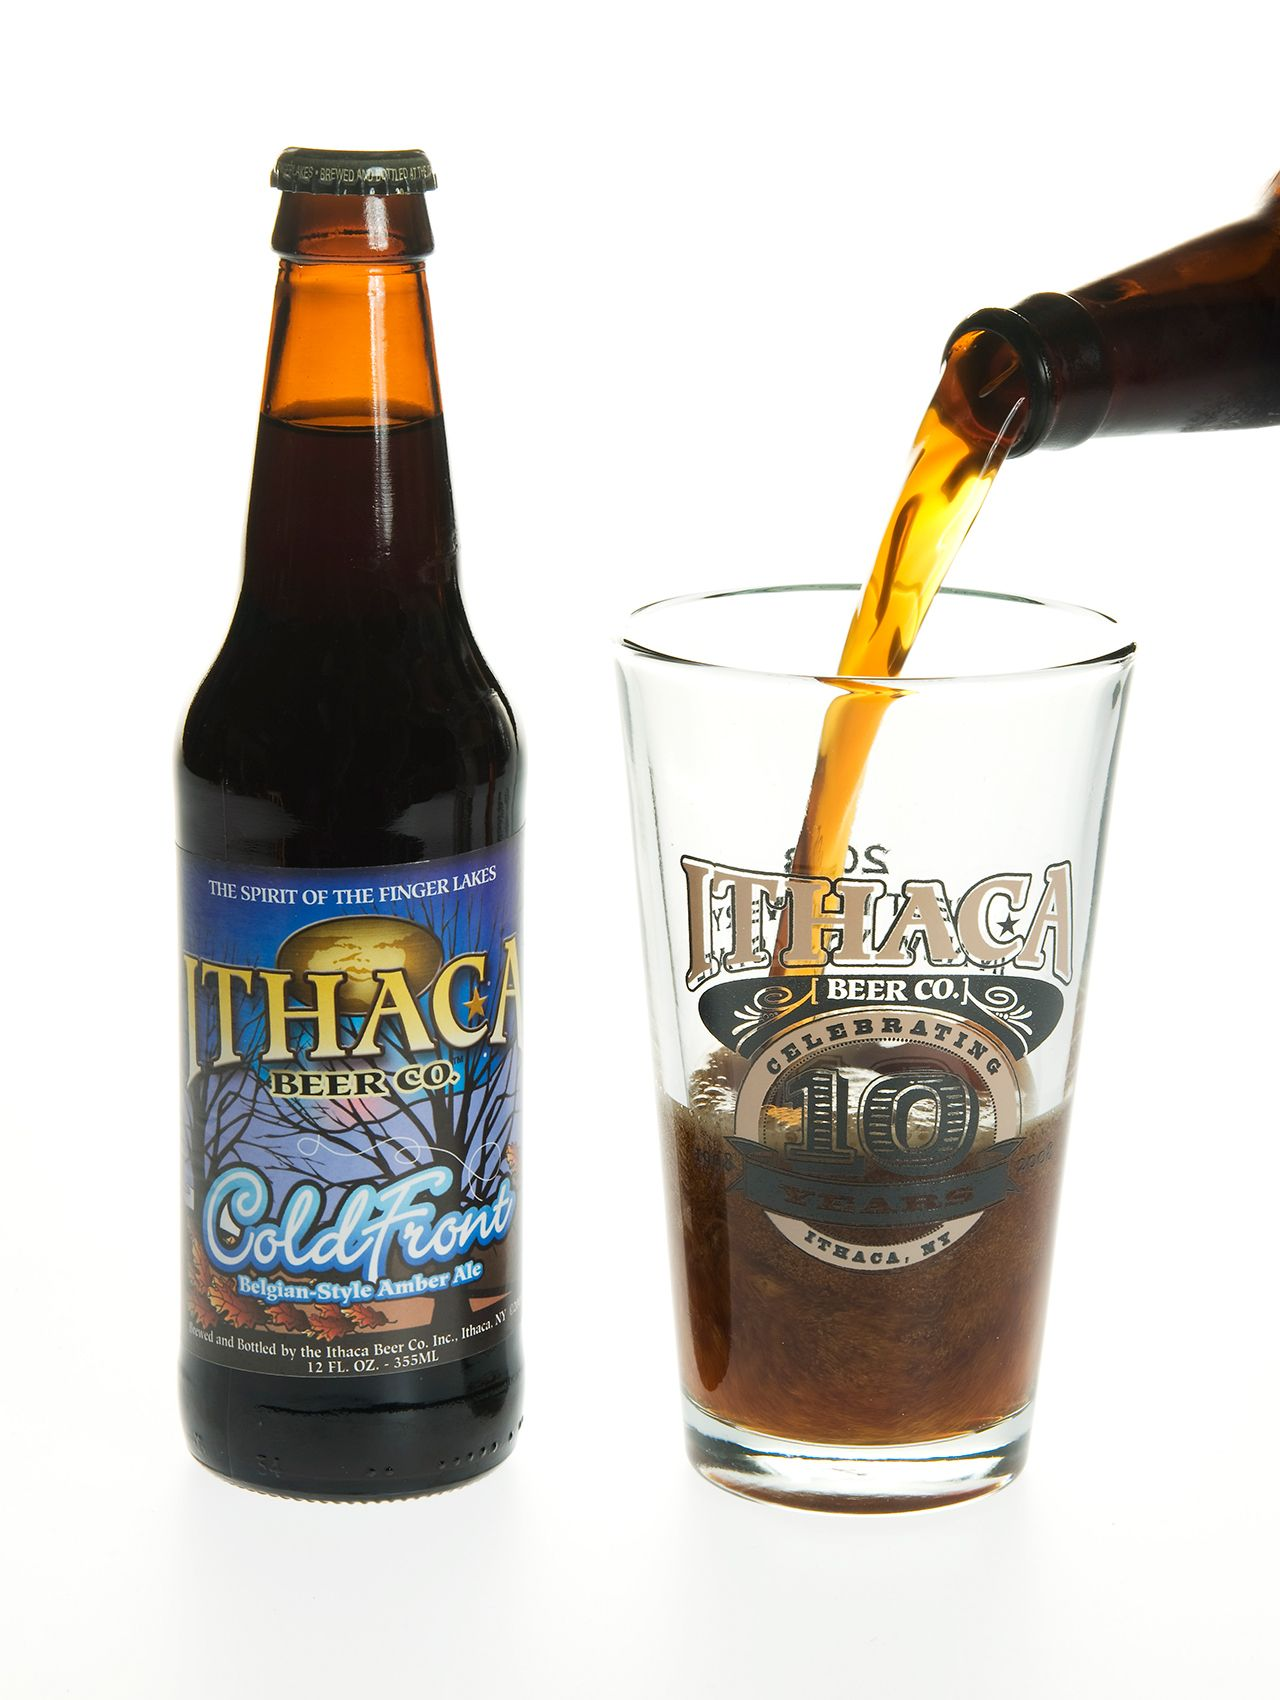 Cold Front by Ithaca Beer